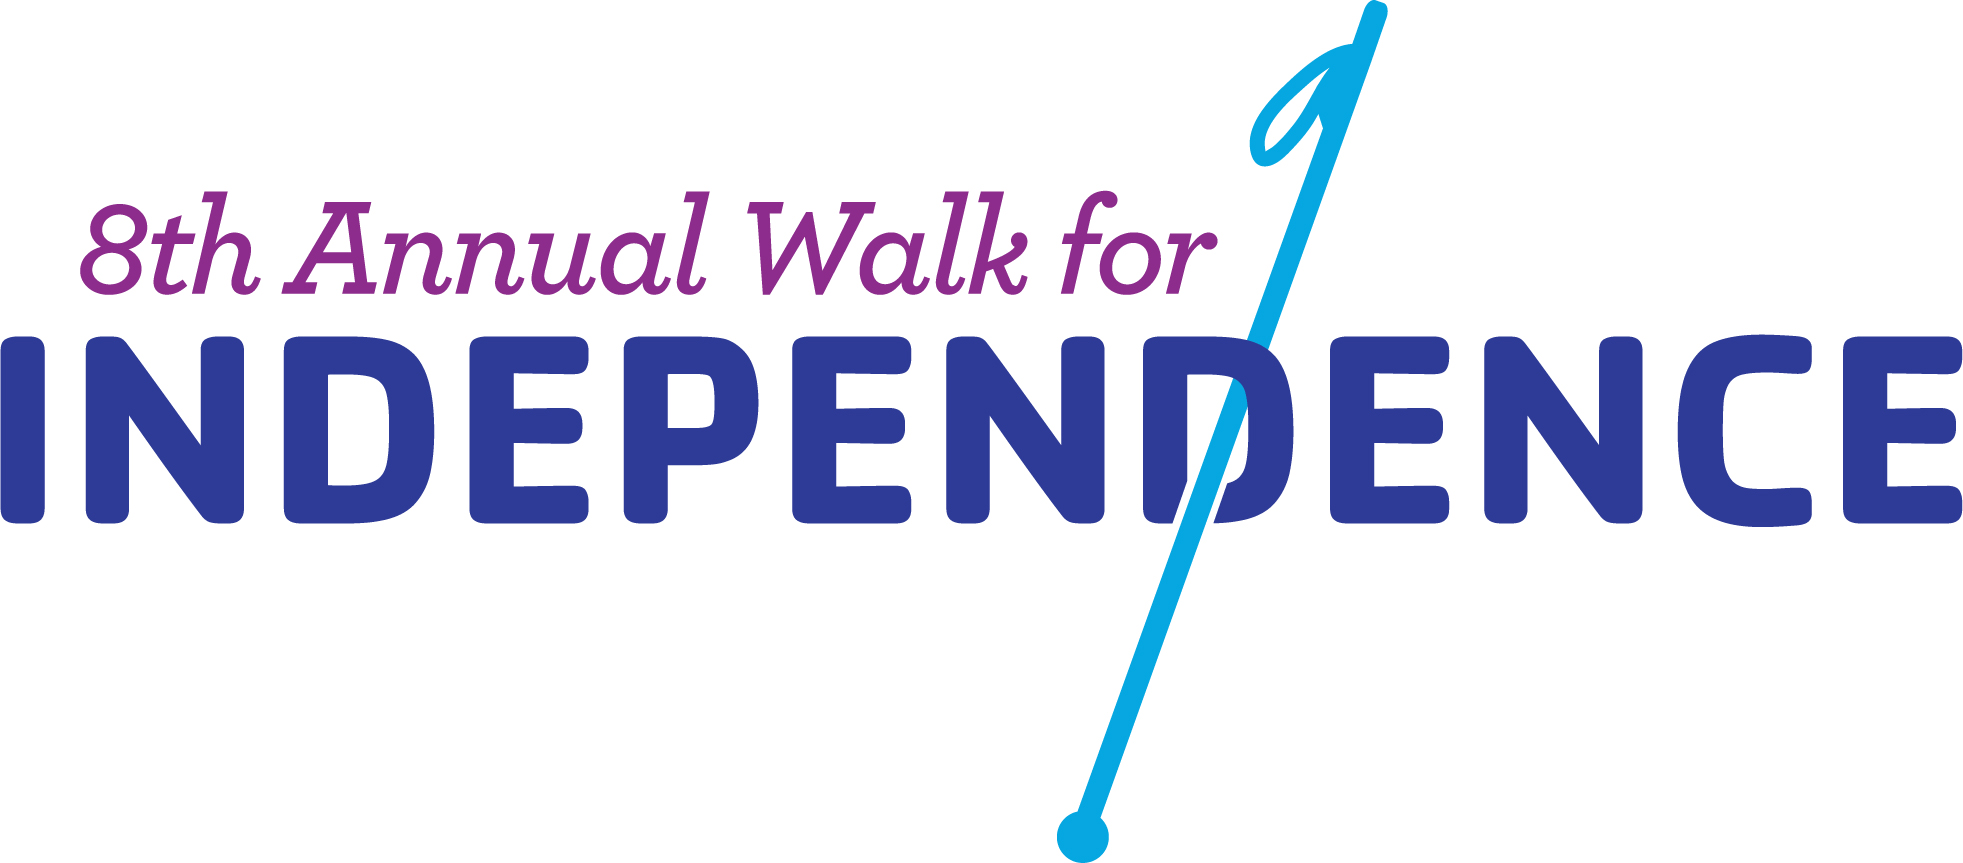 8th Annual Walk for INDEPENDENCE